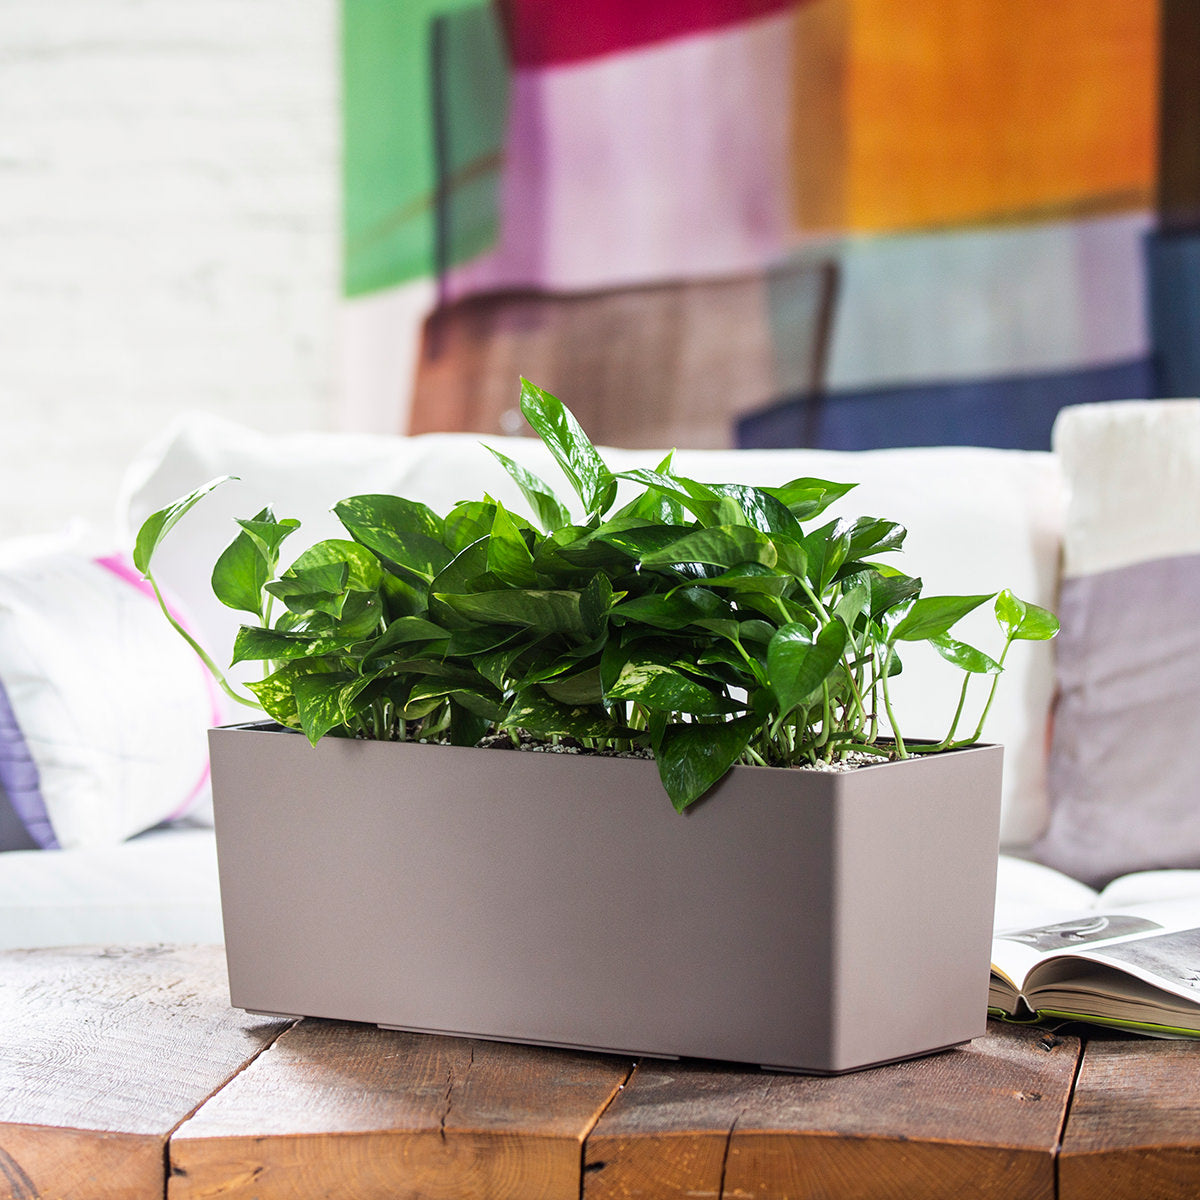 Pothos plant potted in Lechuza Balconera nutmeg planter